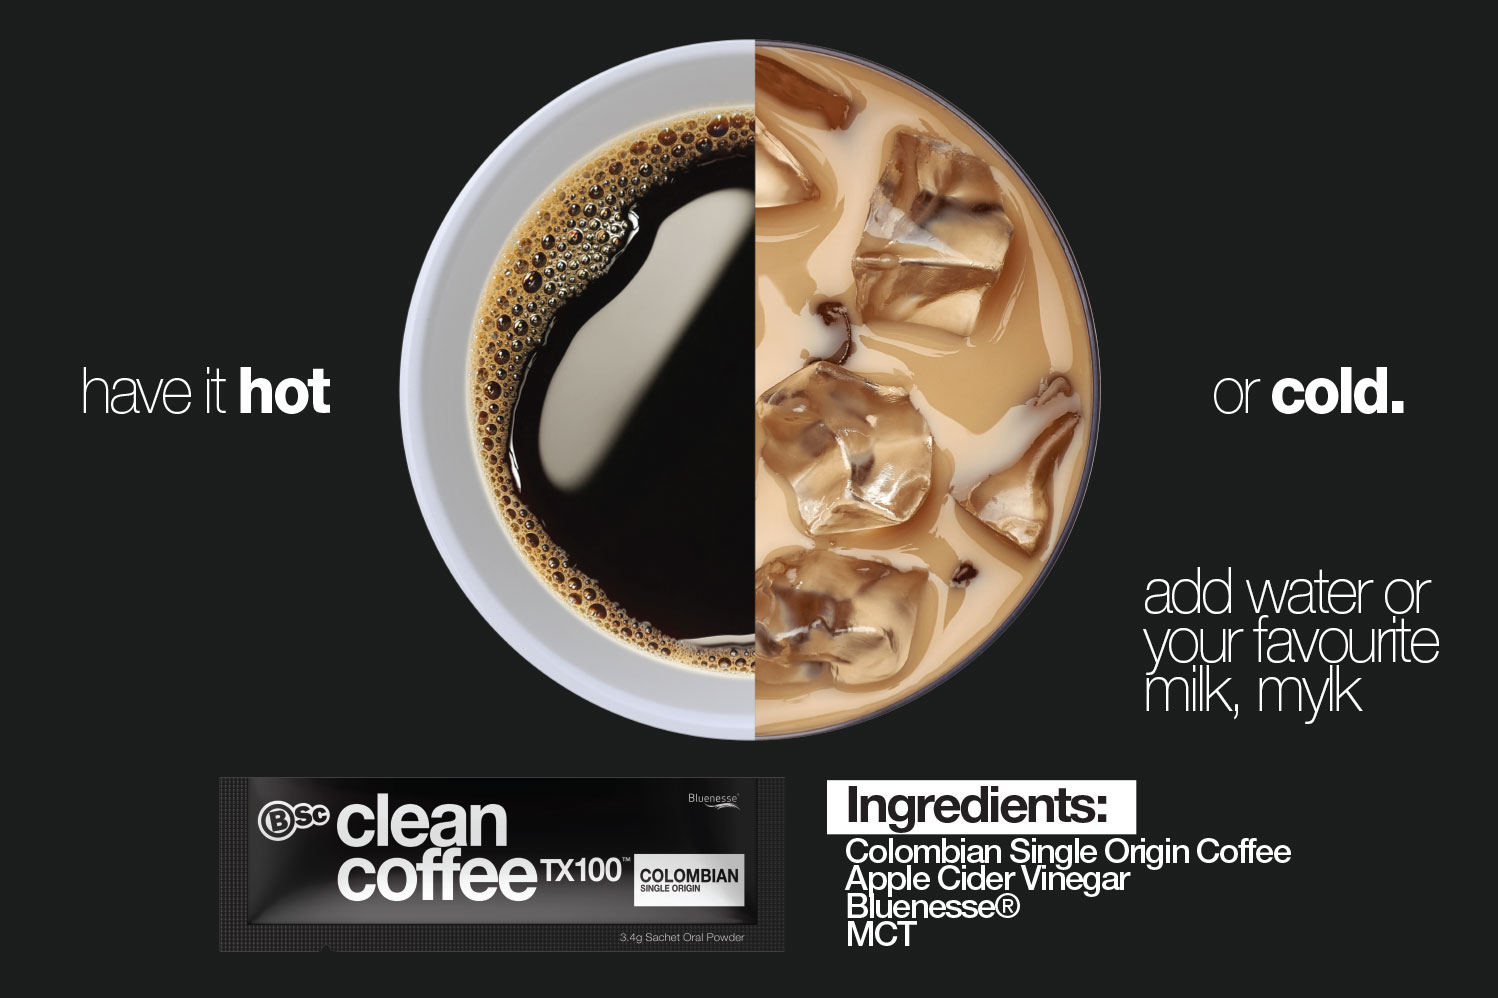 Clean Coffee Information